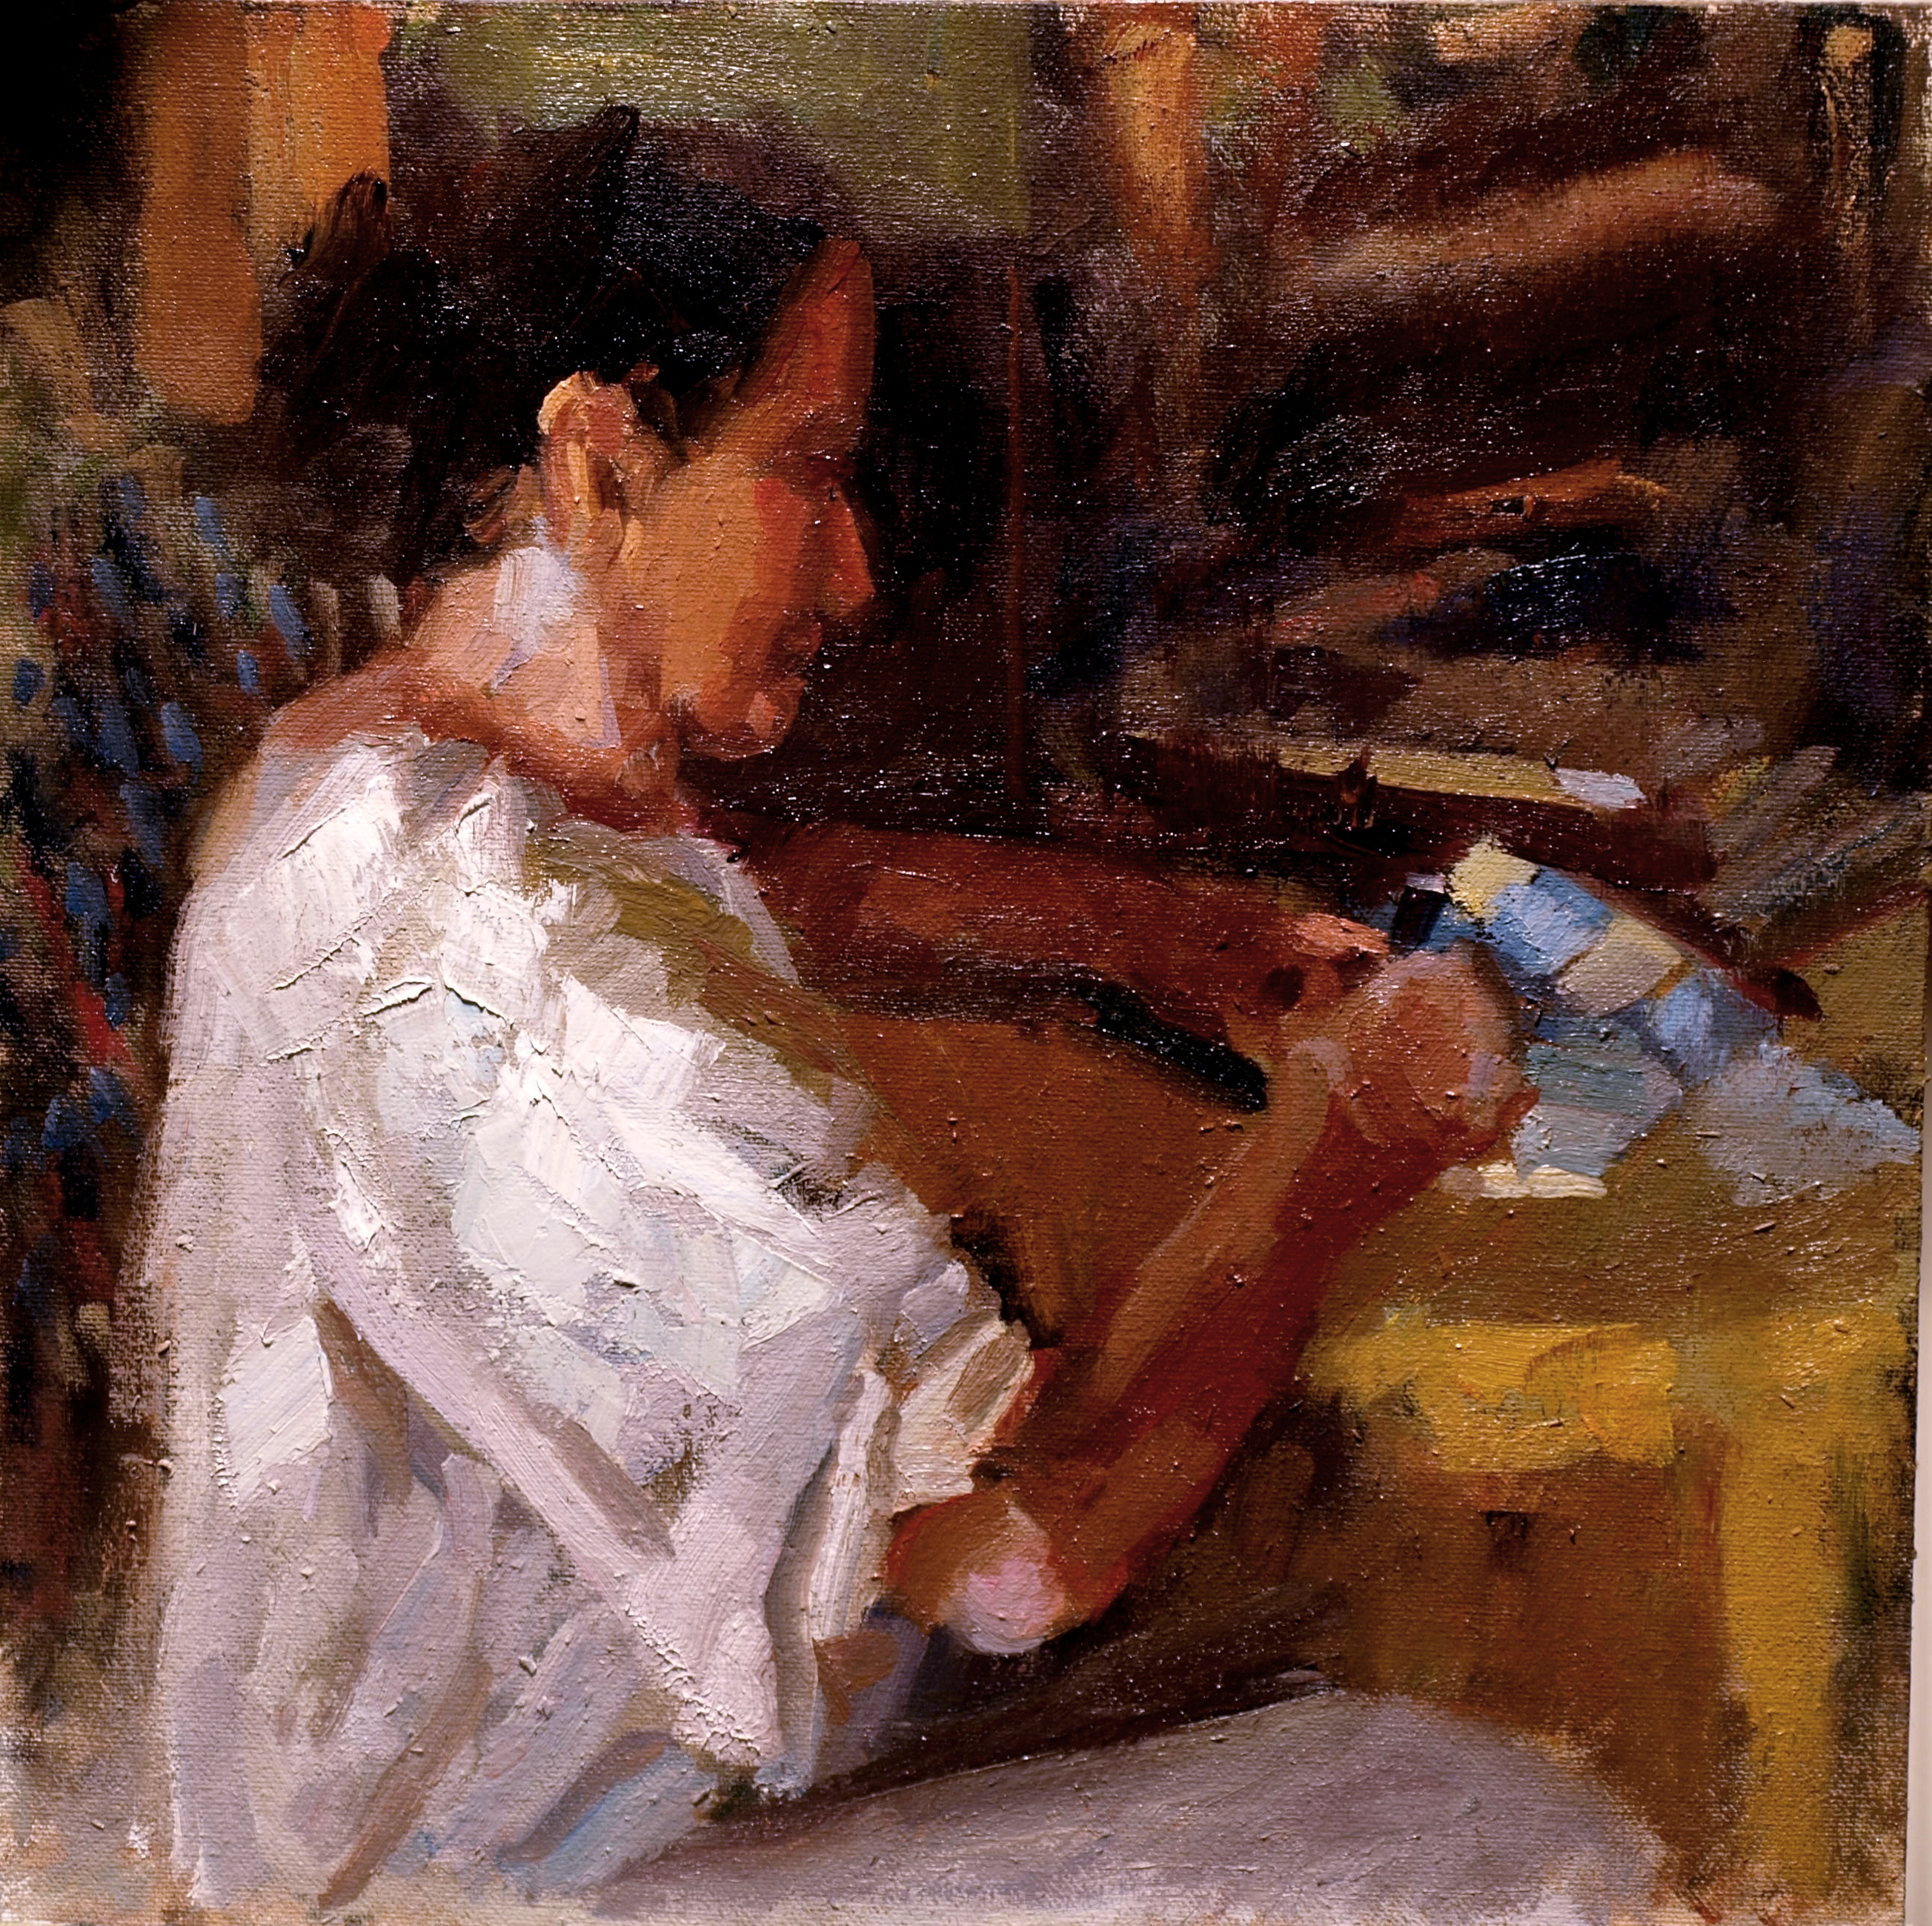 Martine Writing, Oil on Canvas on Panel, 12 x 12 Inches, by Susan Grisell, $300